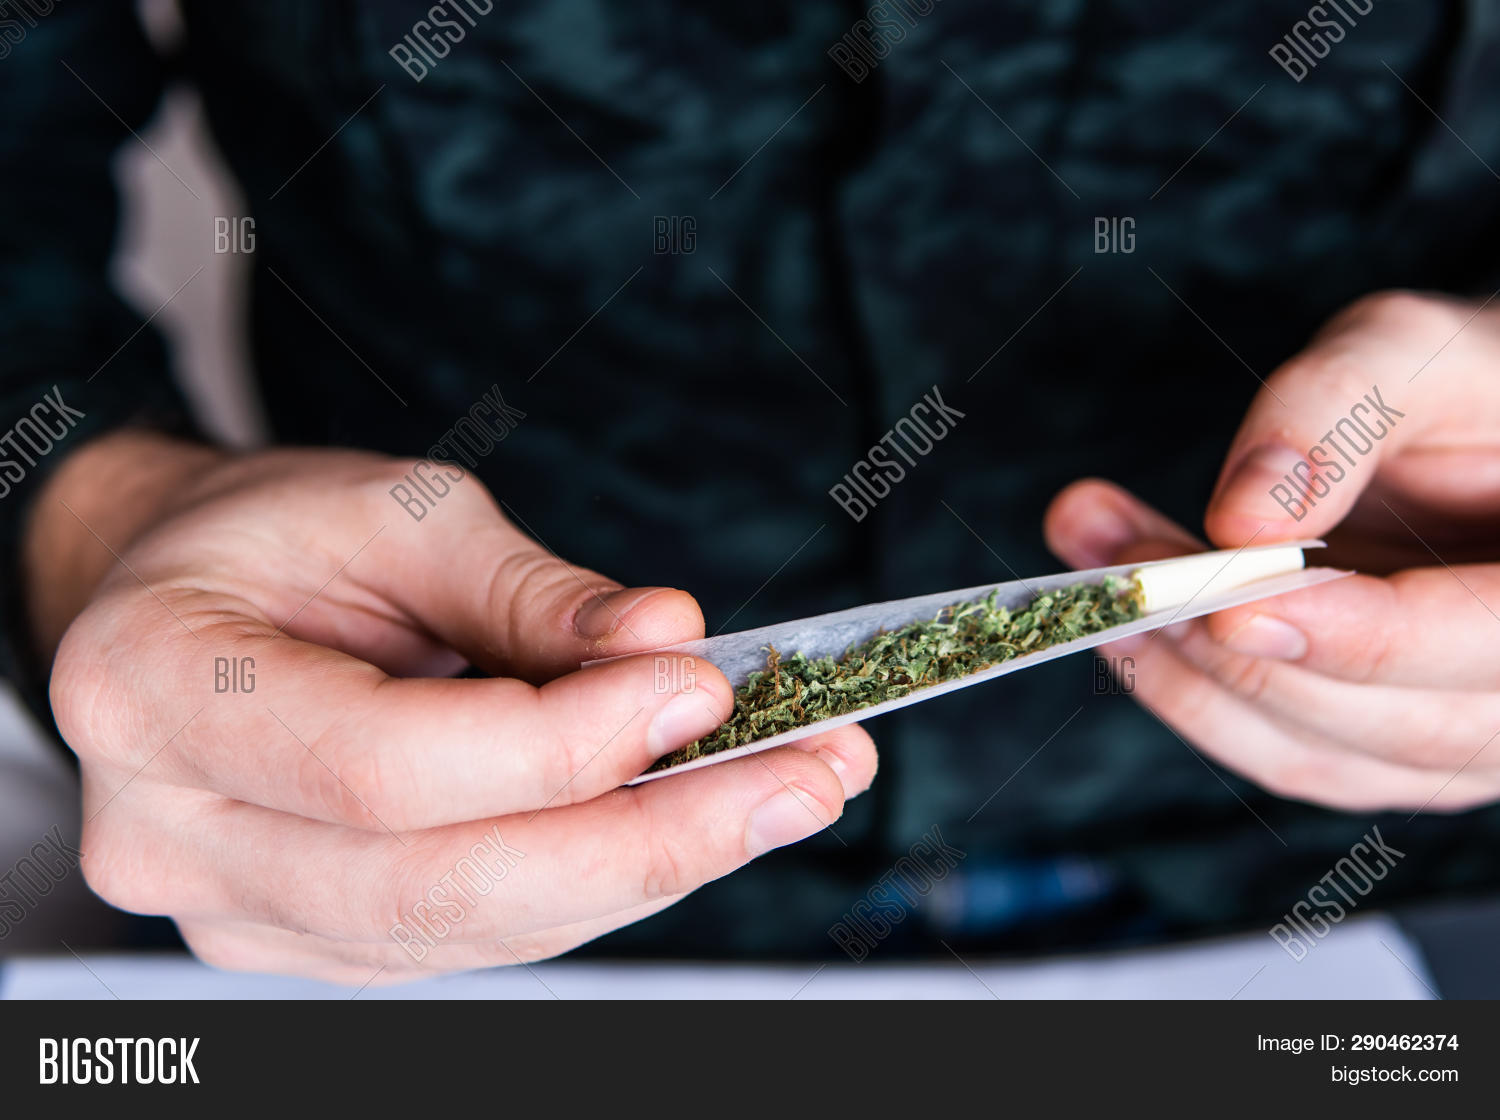 Drug Use. Close Up . Man Rolling A Marijuana Joint. Man Preparing And Rolling Marijuana Cannabis Joi